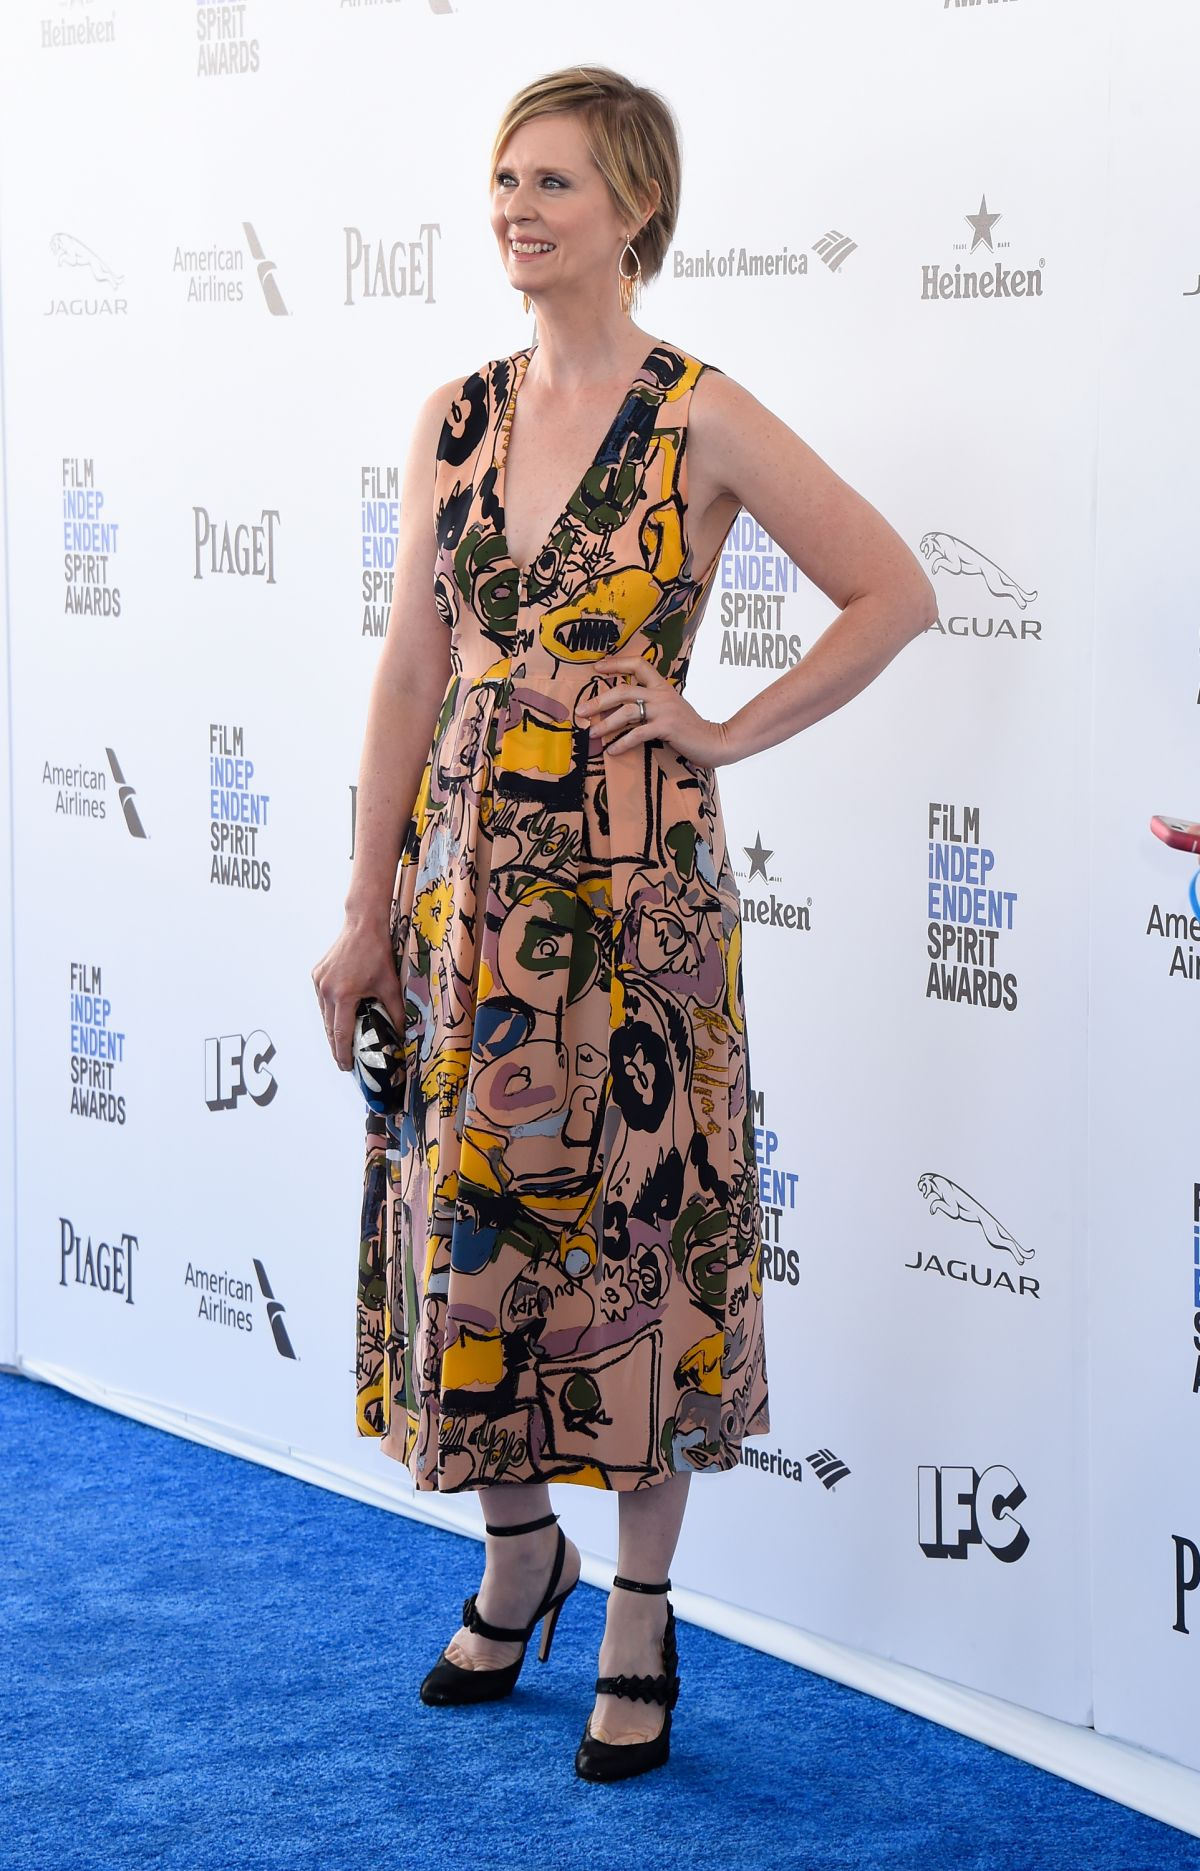 CYNTHIA NIXON at Film Independent Spirit Awards in Santa Monica 02/27/2016